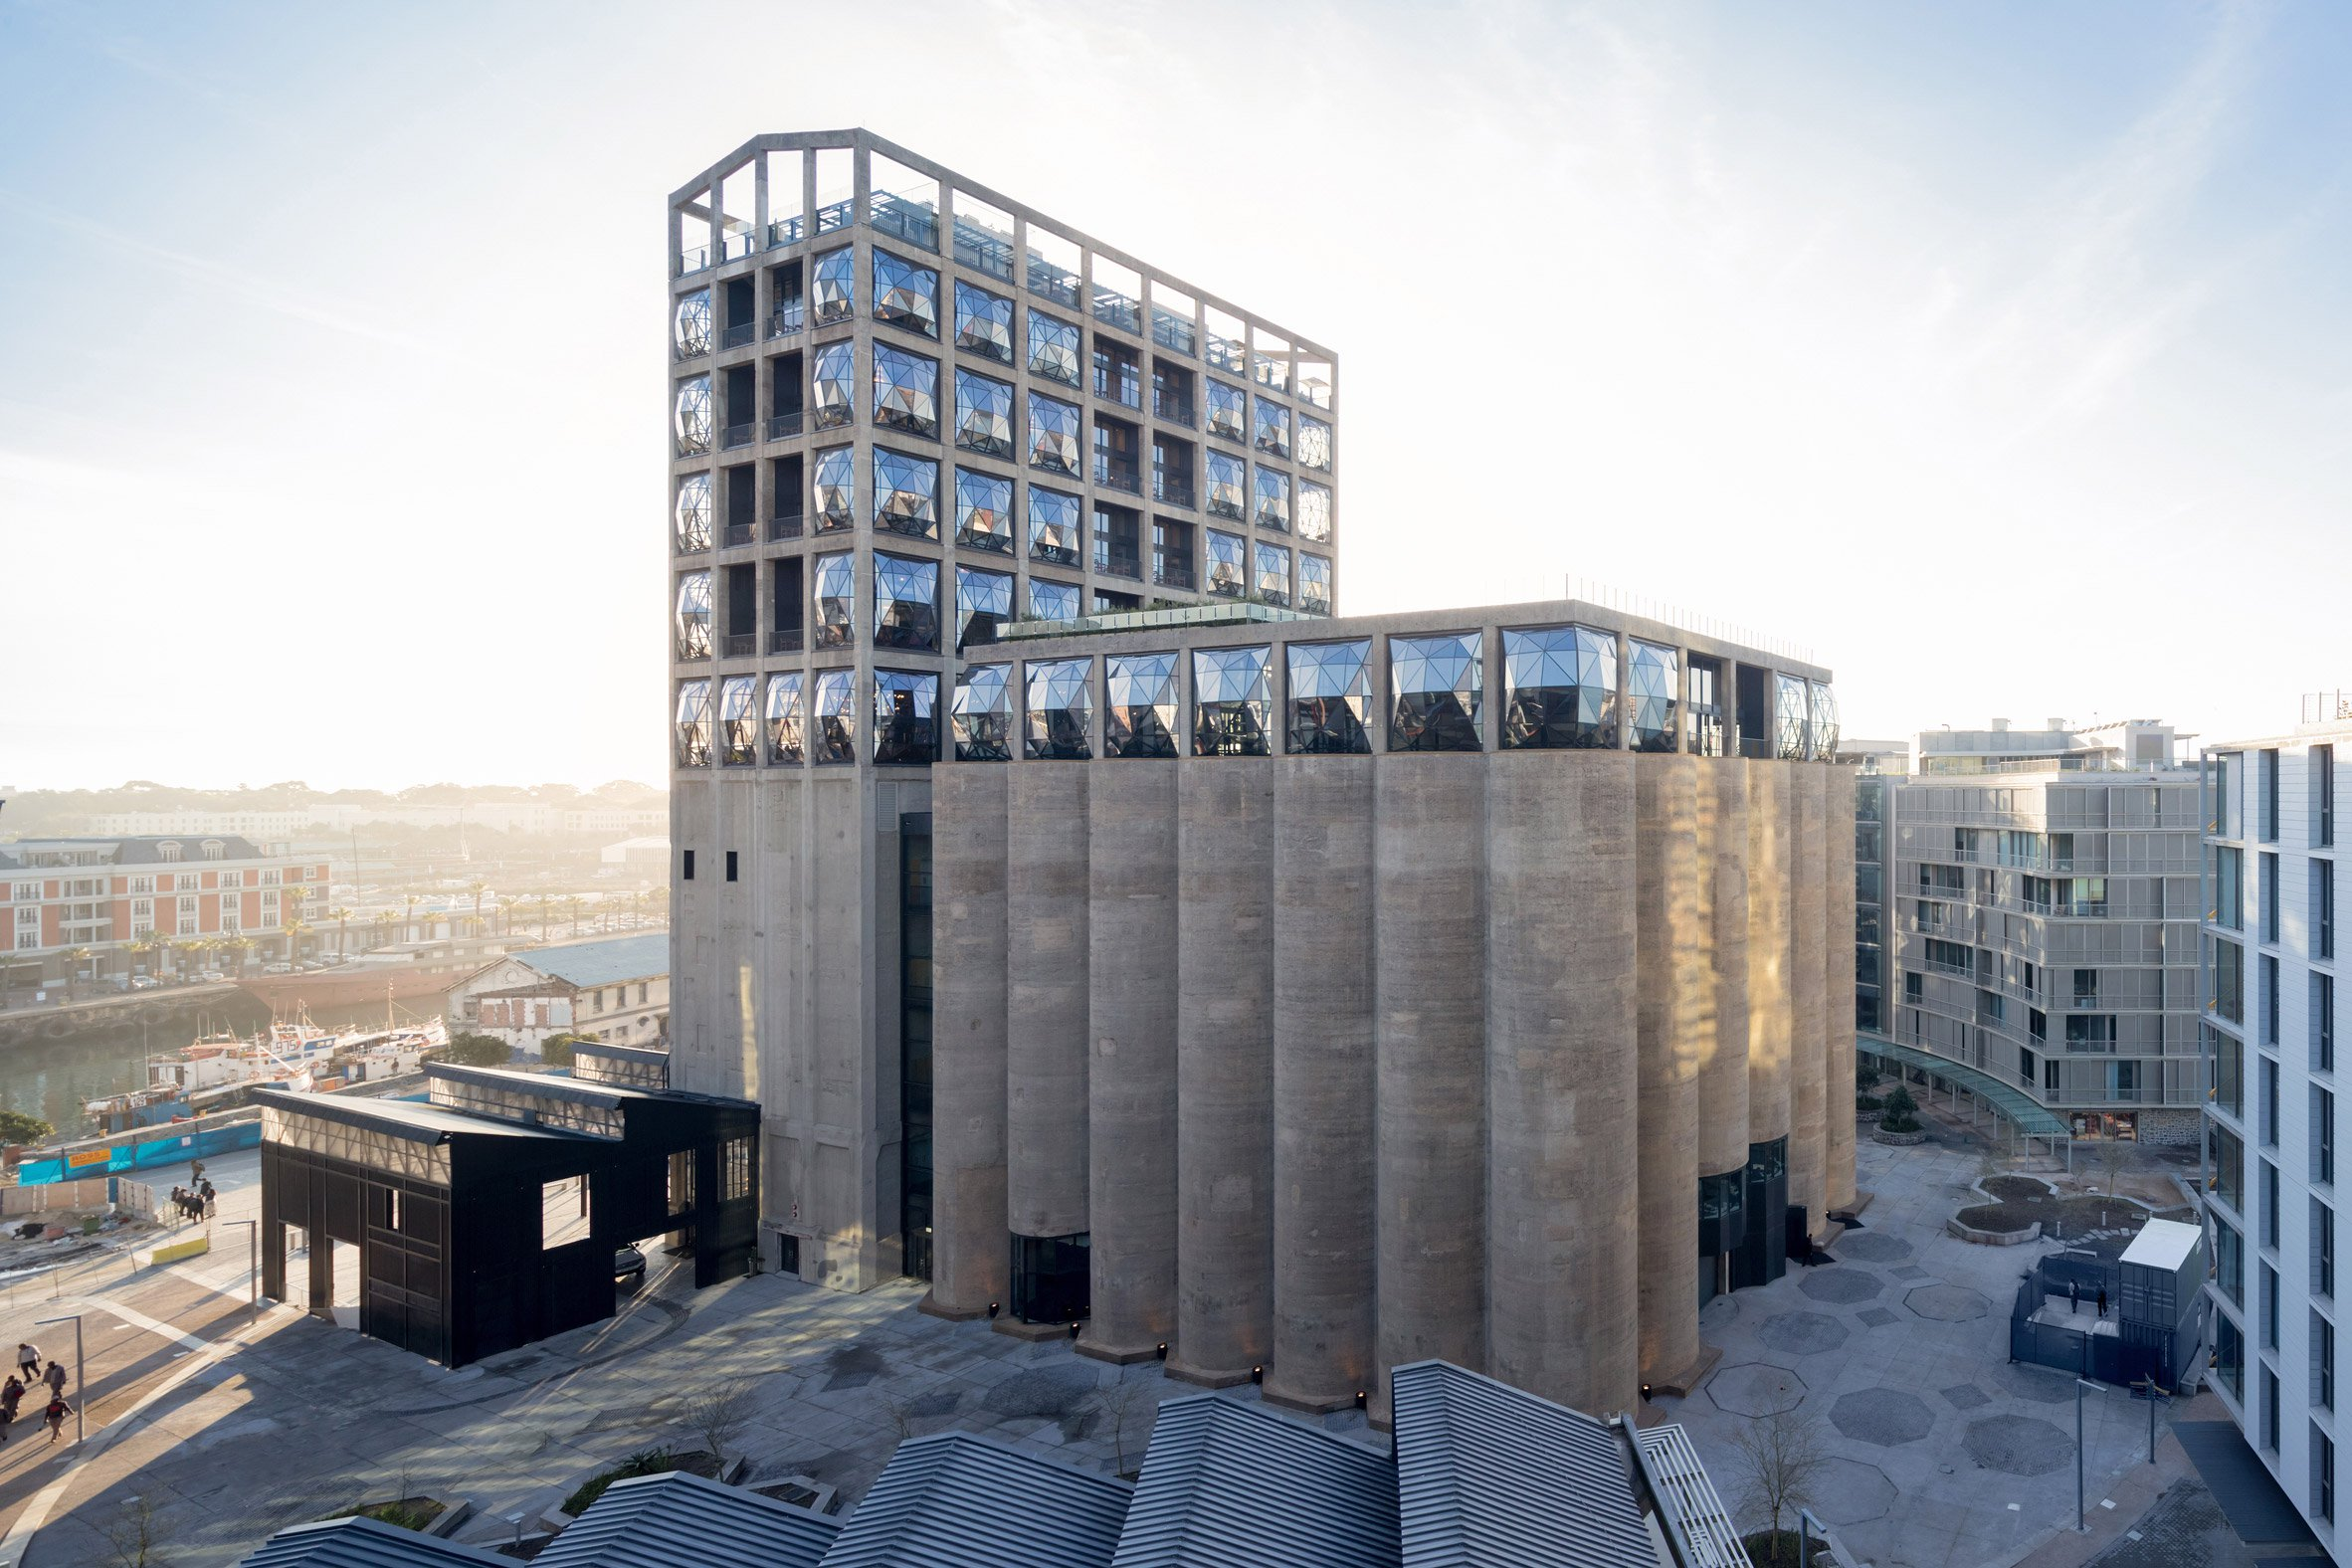 heatherwick-architecture-cultural-galleries-south-africa-v-and-a_dezeen_2364_col_2.jpg